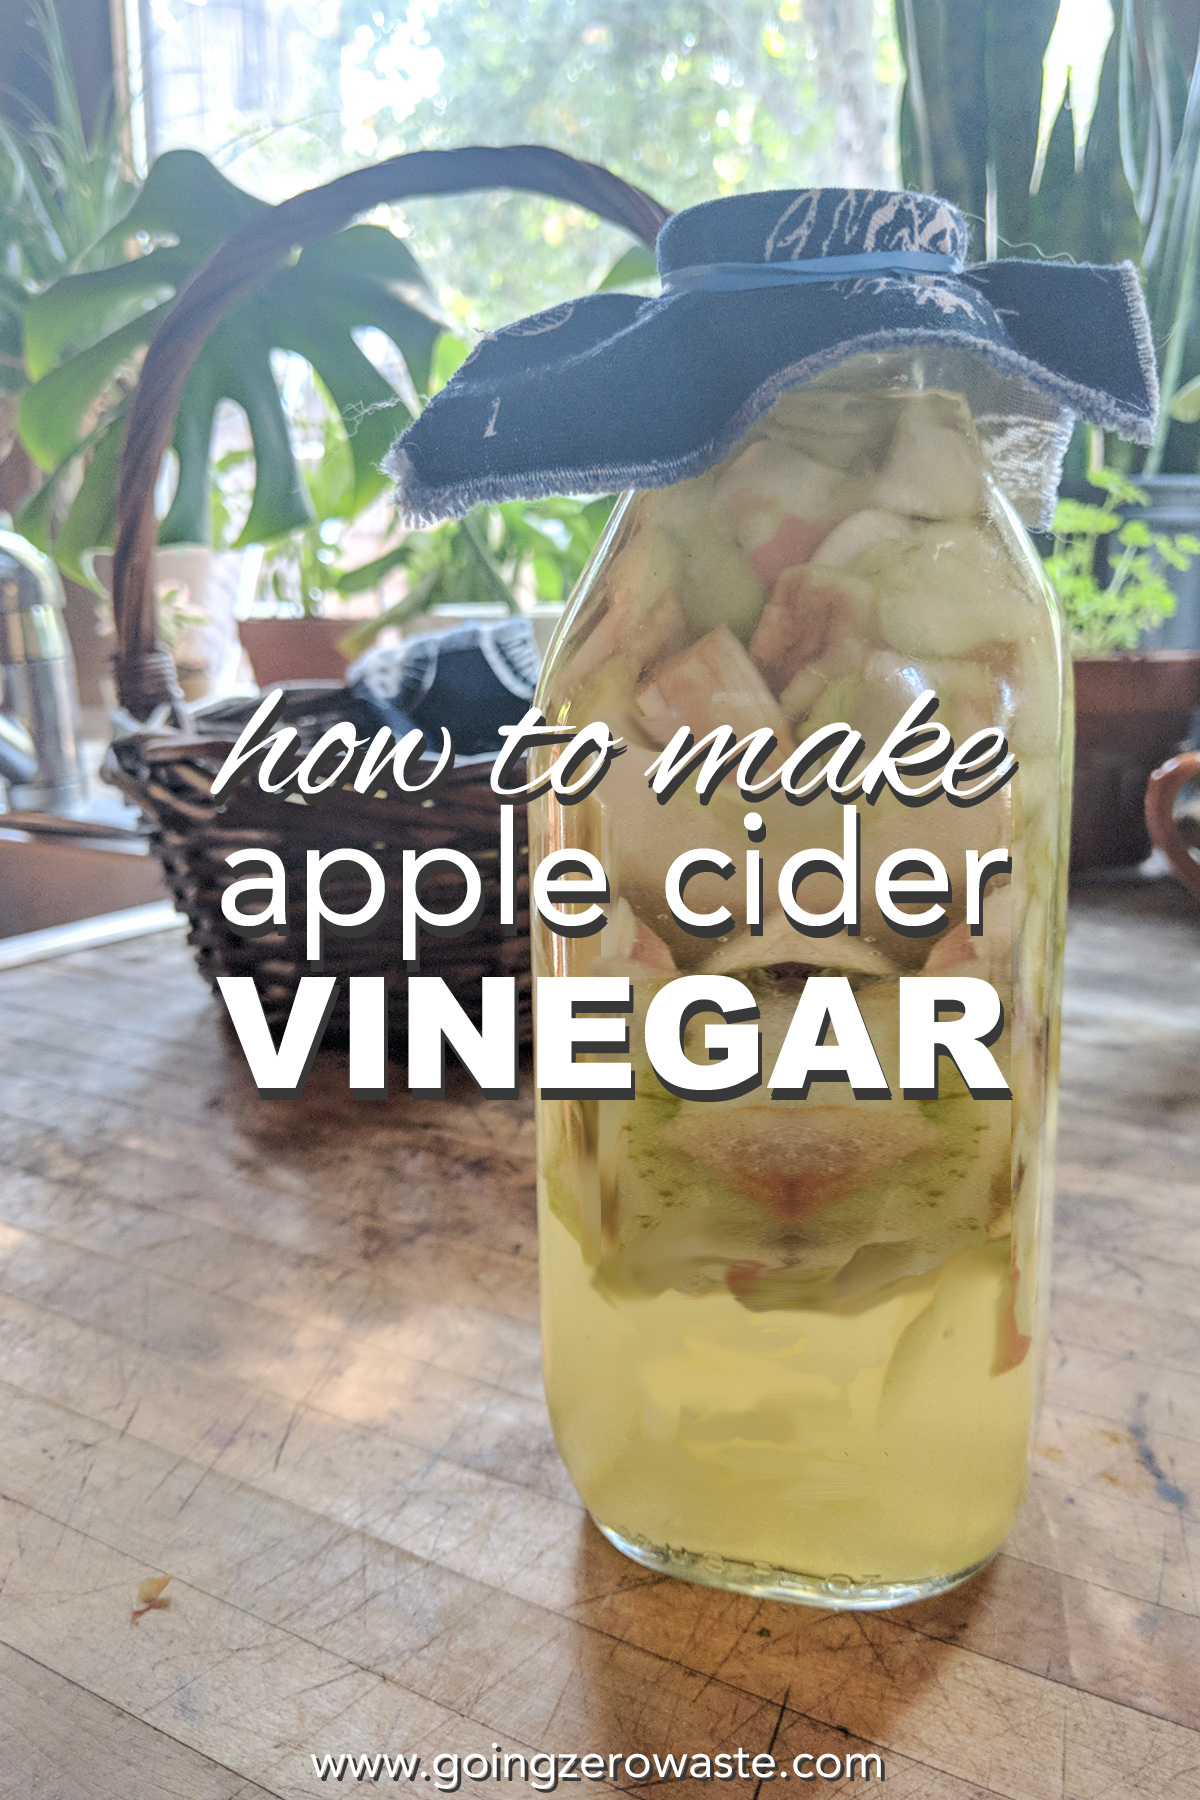 How to make apple cider vinegar from scraps from www.goingzerowaste.com #apples #applecidervinegar #acv #fallrecipes #cookingwithscraps